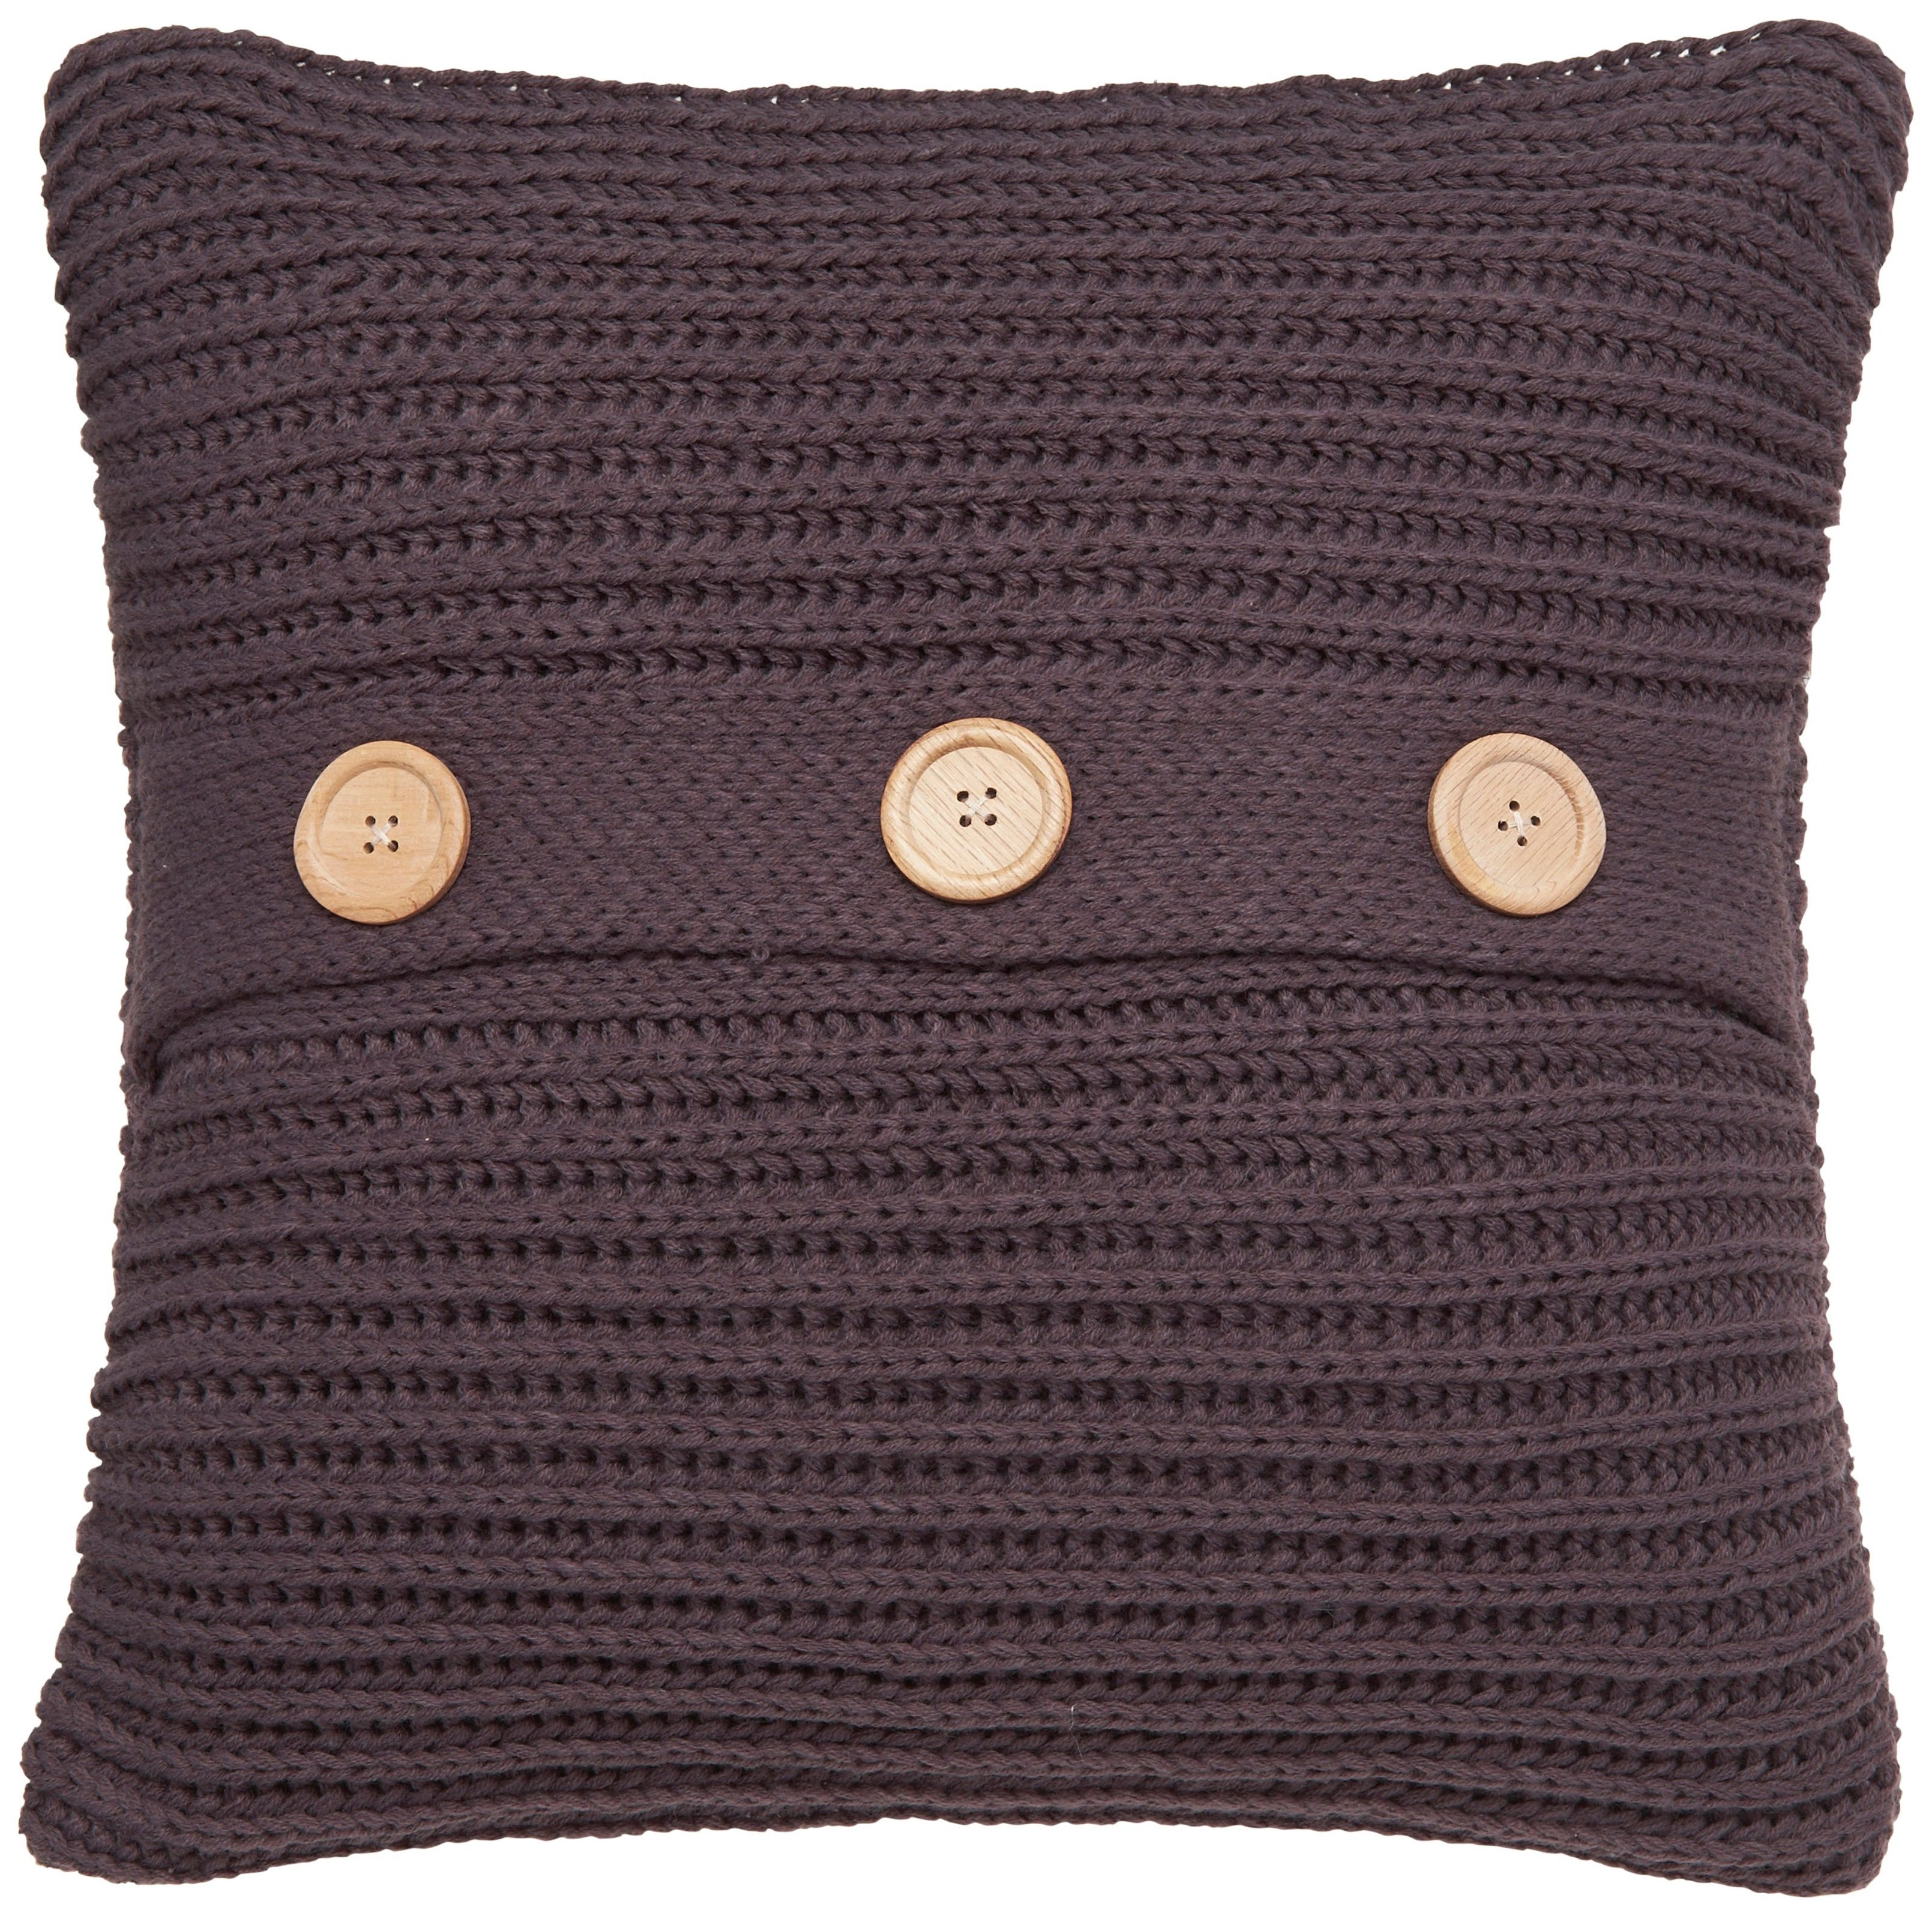 Image of Catherine Lansfield Chunky Knit Cushion - Charcoal